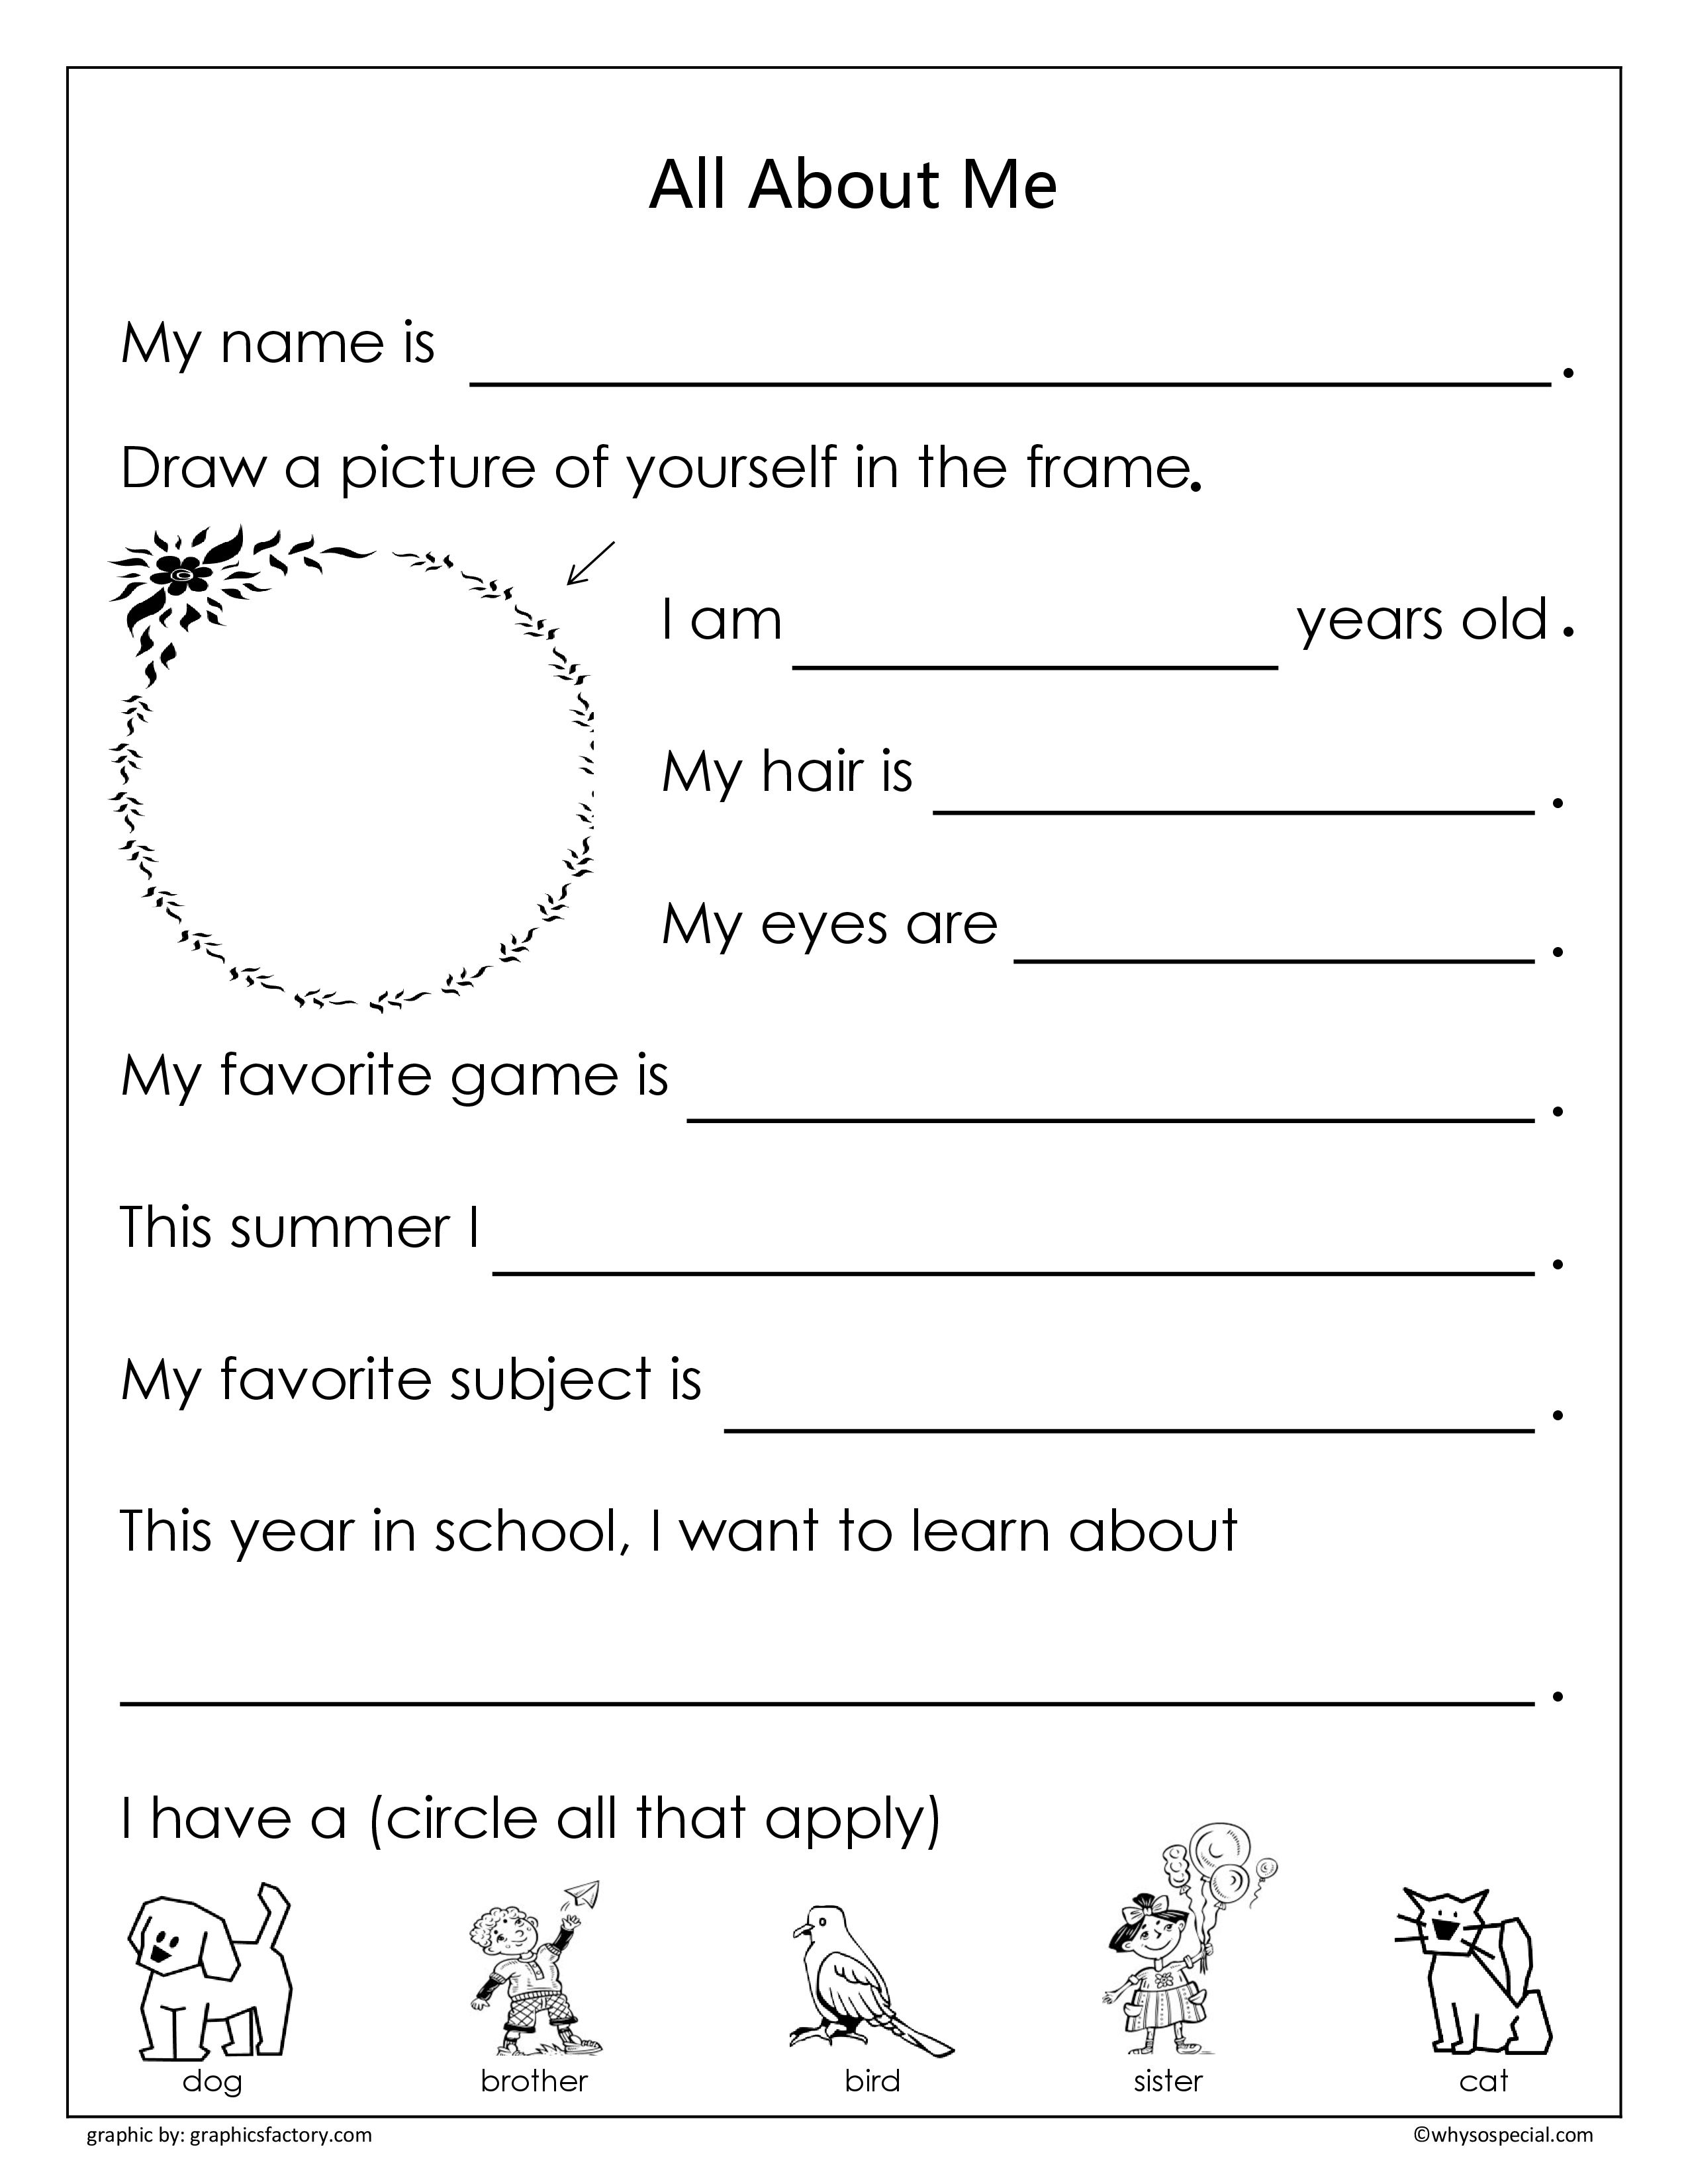 Awesome All About Me Coloring Pages For Preschoolers Gallery Kindergarten Worksheets All About Me Worksheet School Worksheets